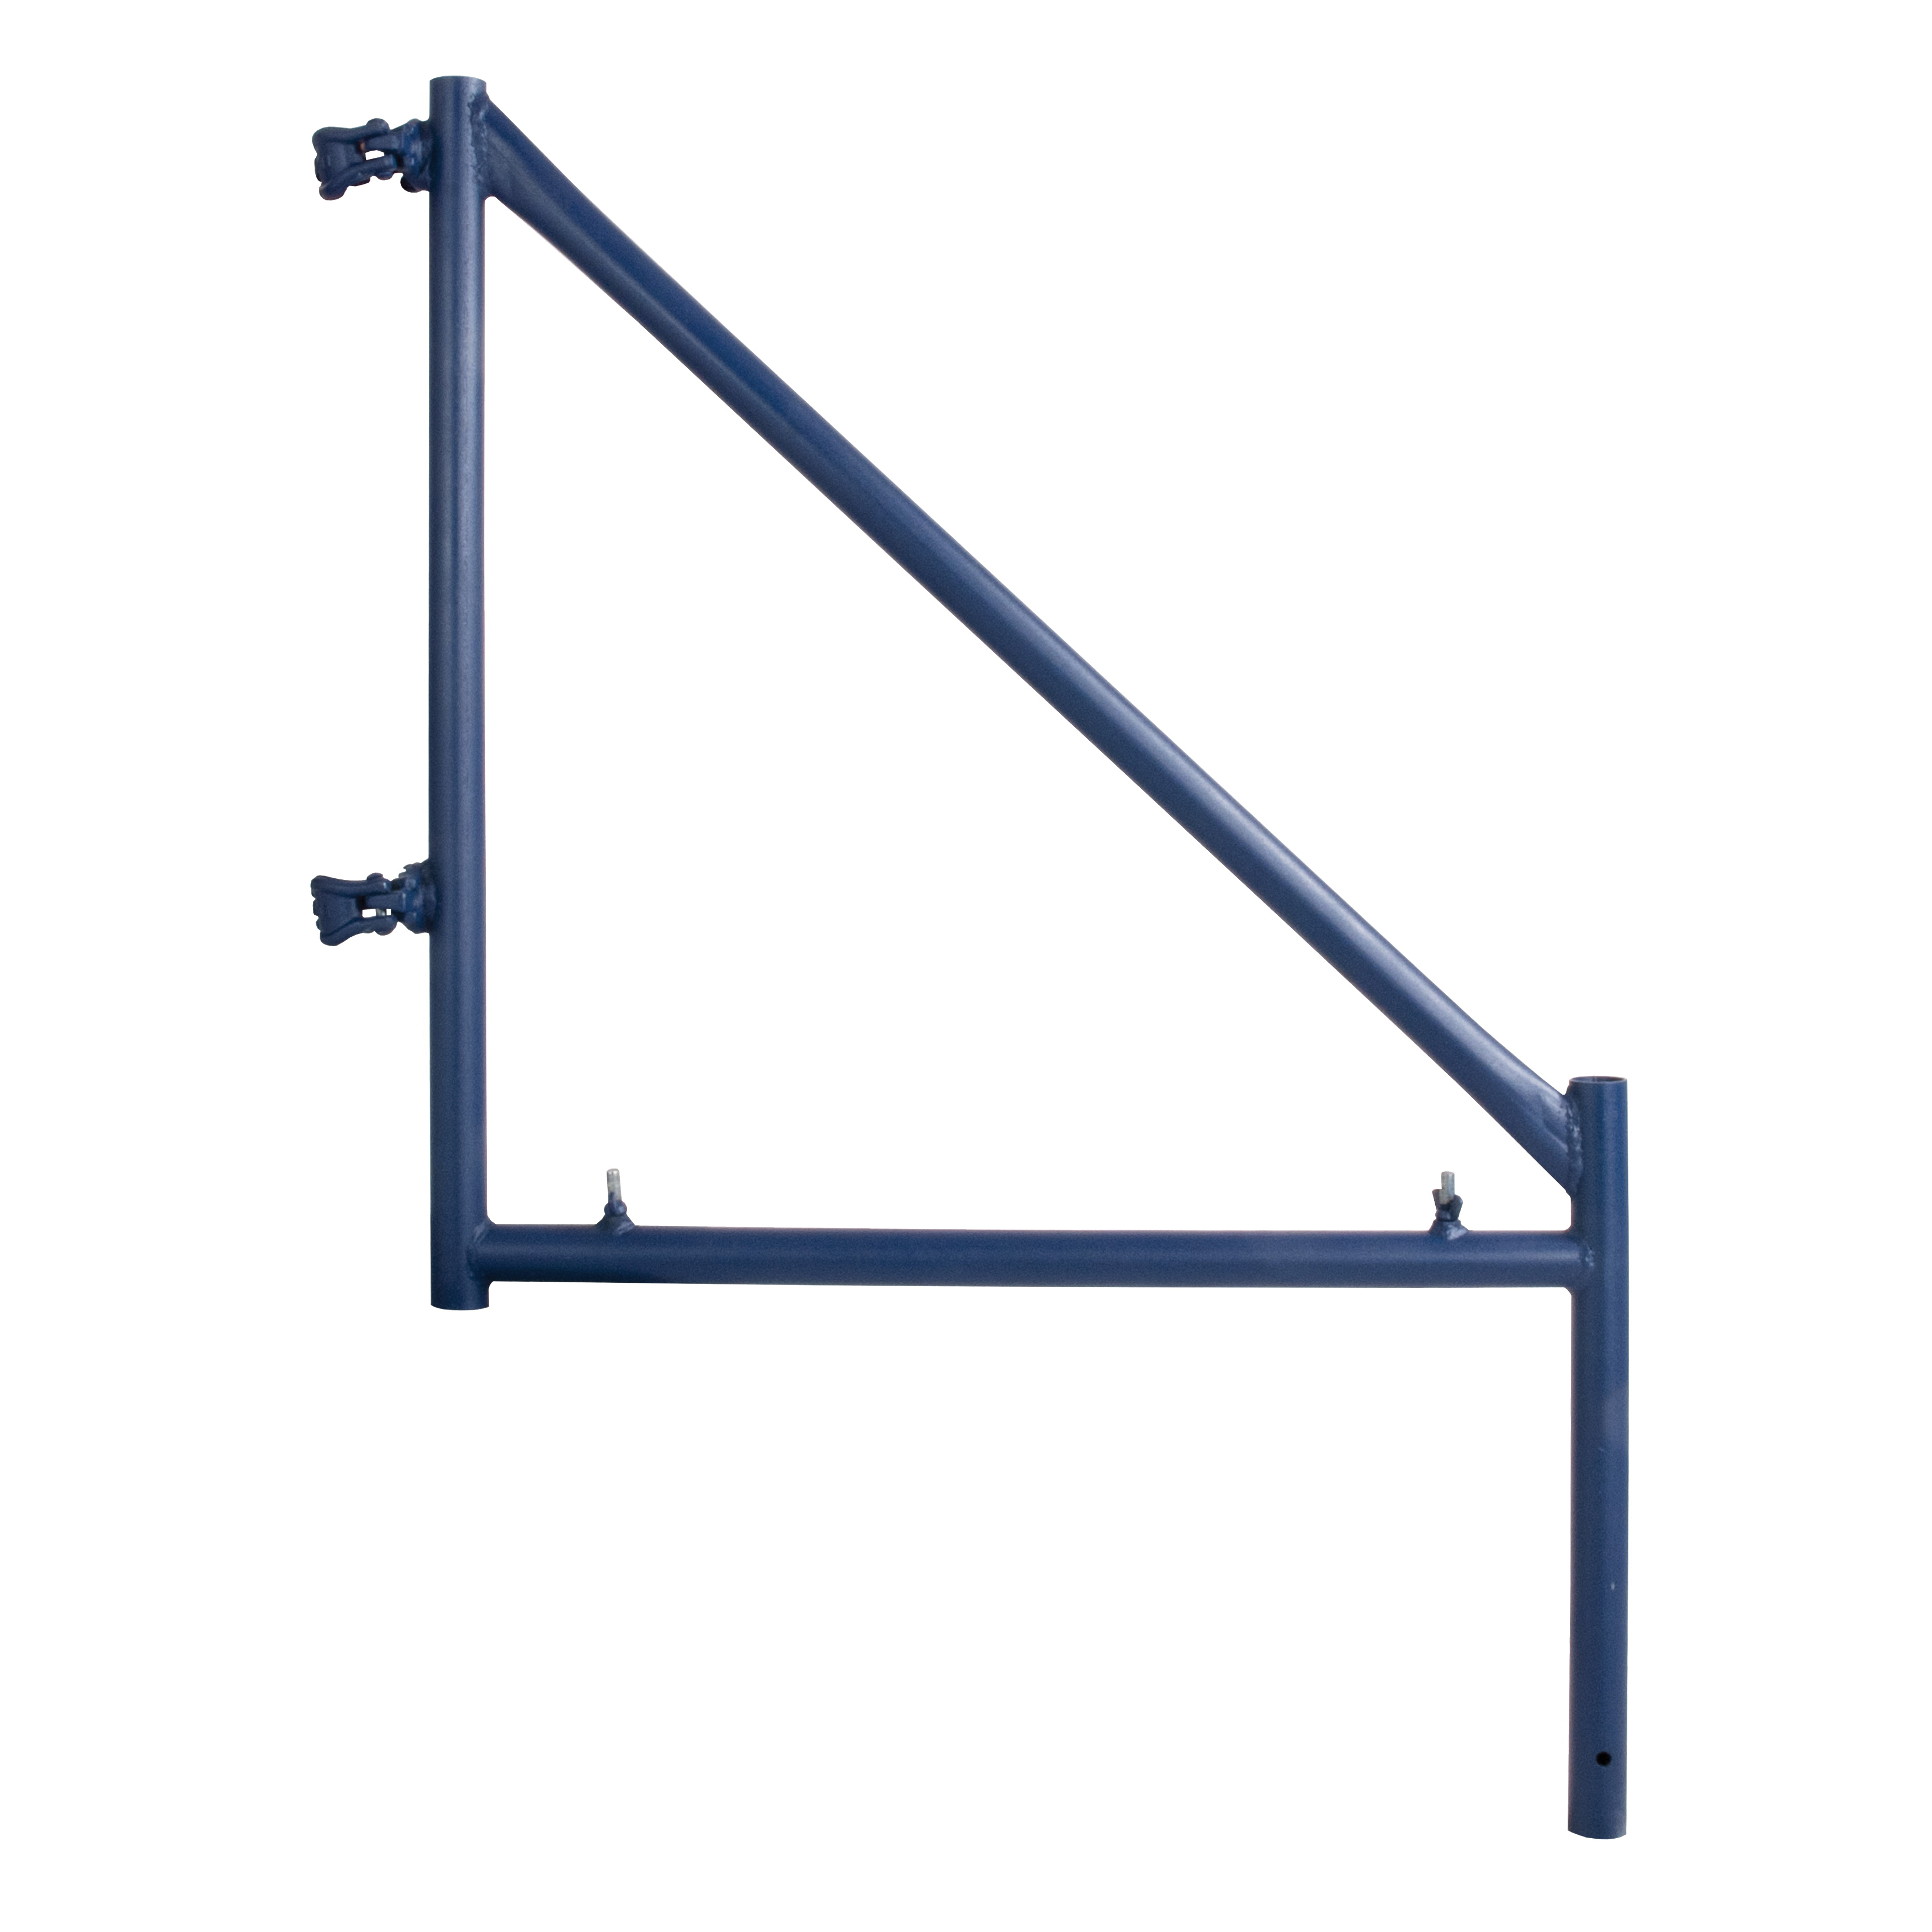 Picture of METALTECH M-MO32 Scaffold Outrigger, Steel, Blue, Powder-Coated